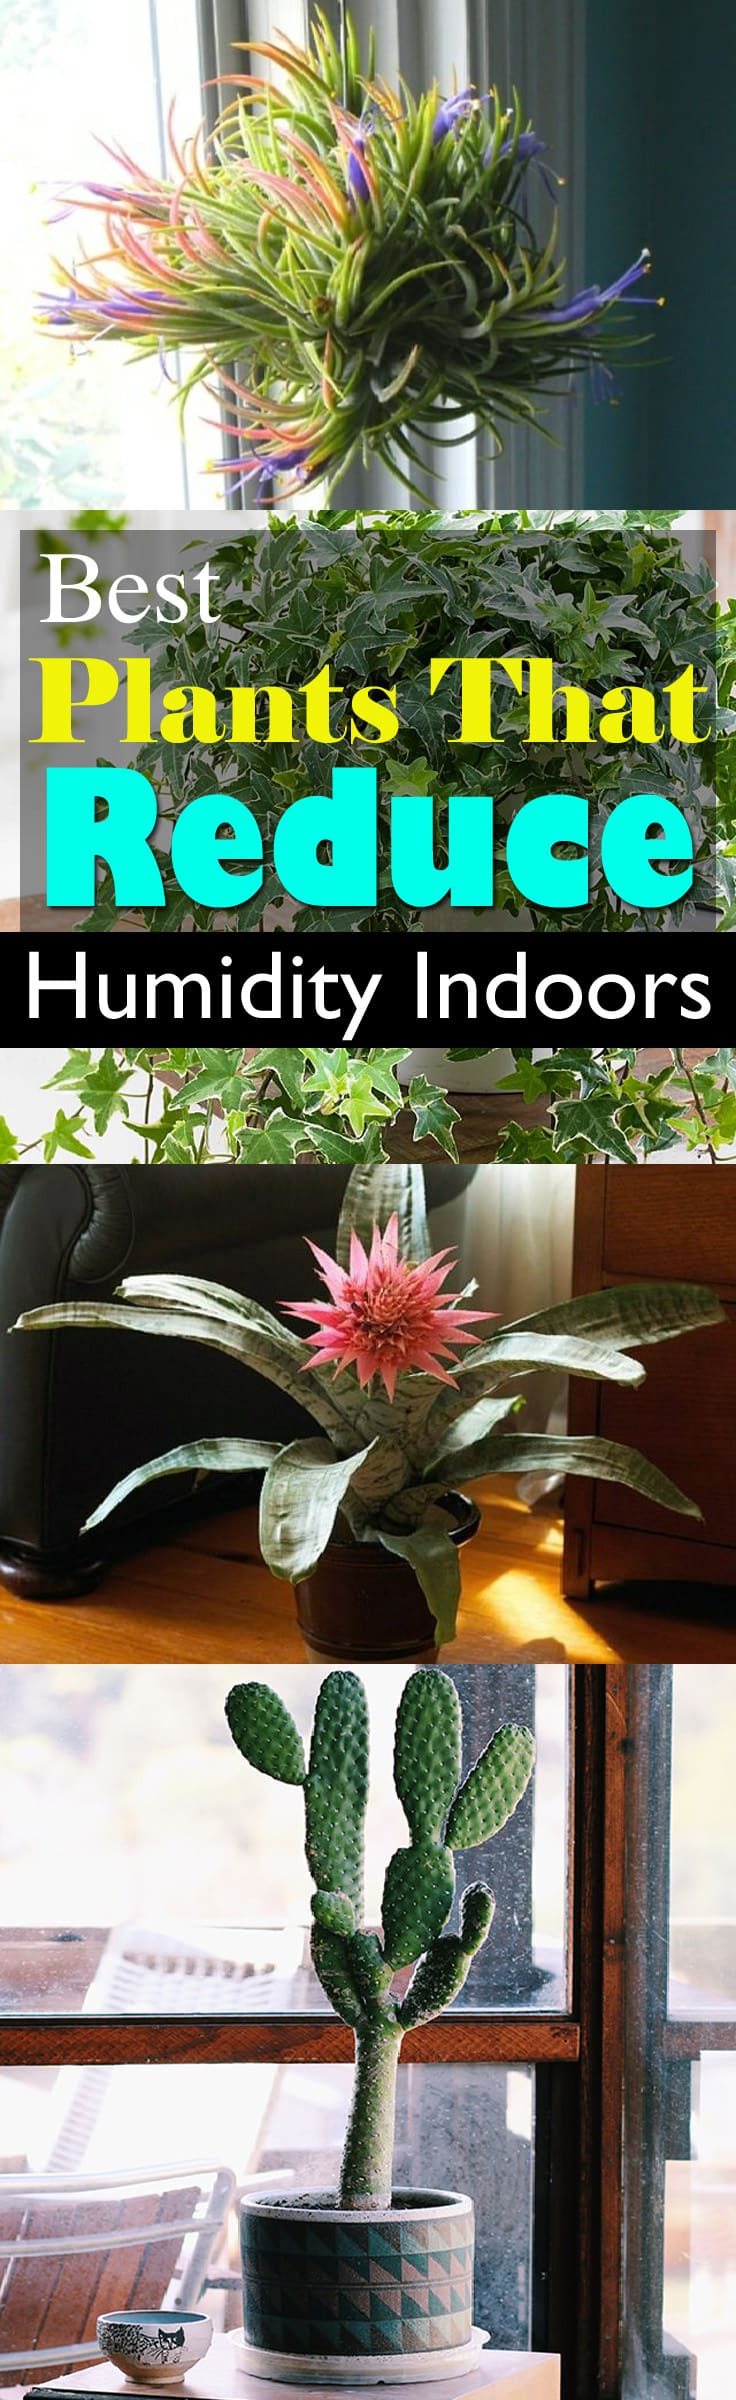 Nice Cope With Stickiness And Extra Moisture In The Air By Growing Plants That  Reduce Humidity Indoors